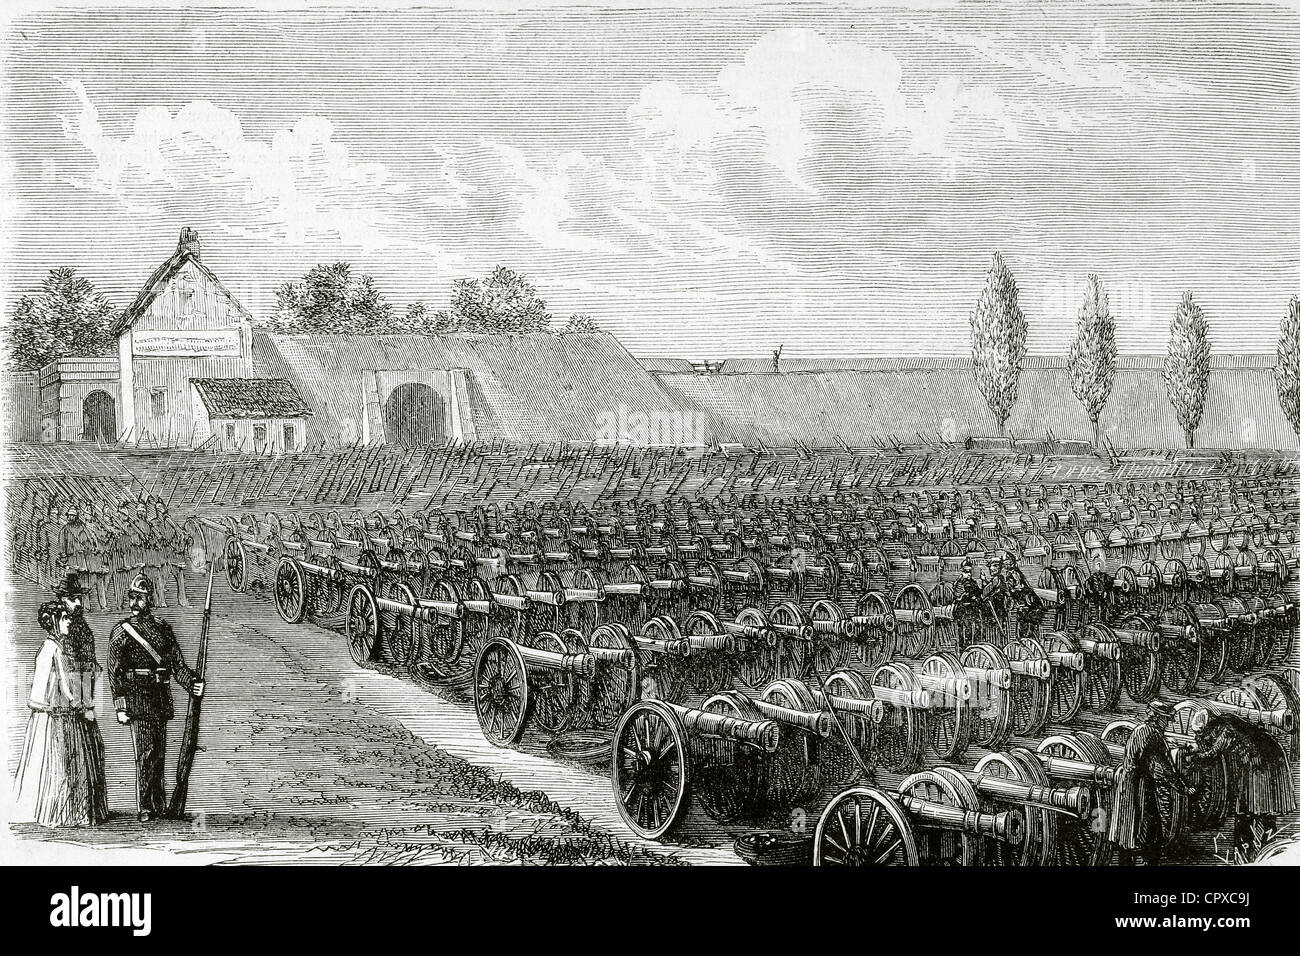 Franco-Prussian War (1870-1871). Cannons taken in Sedan. The Spanish Illustration, 1871. Engraving by Capuz. - Stock Image